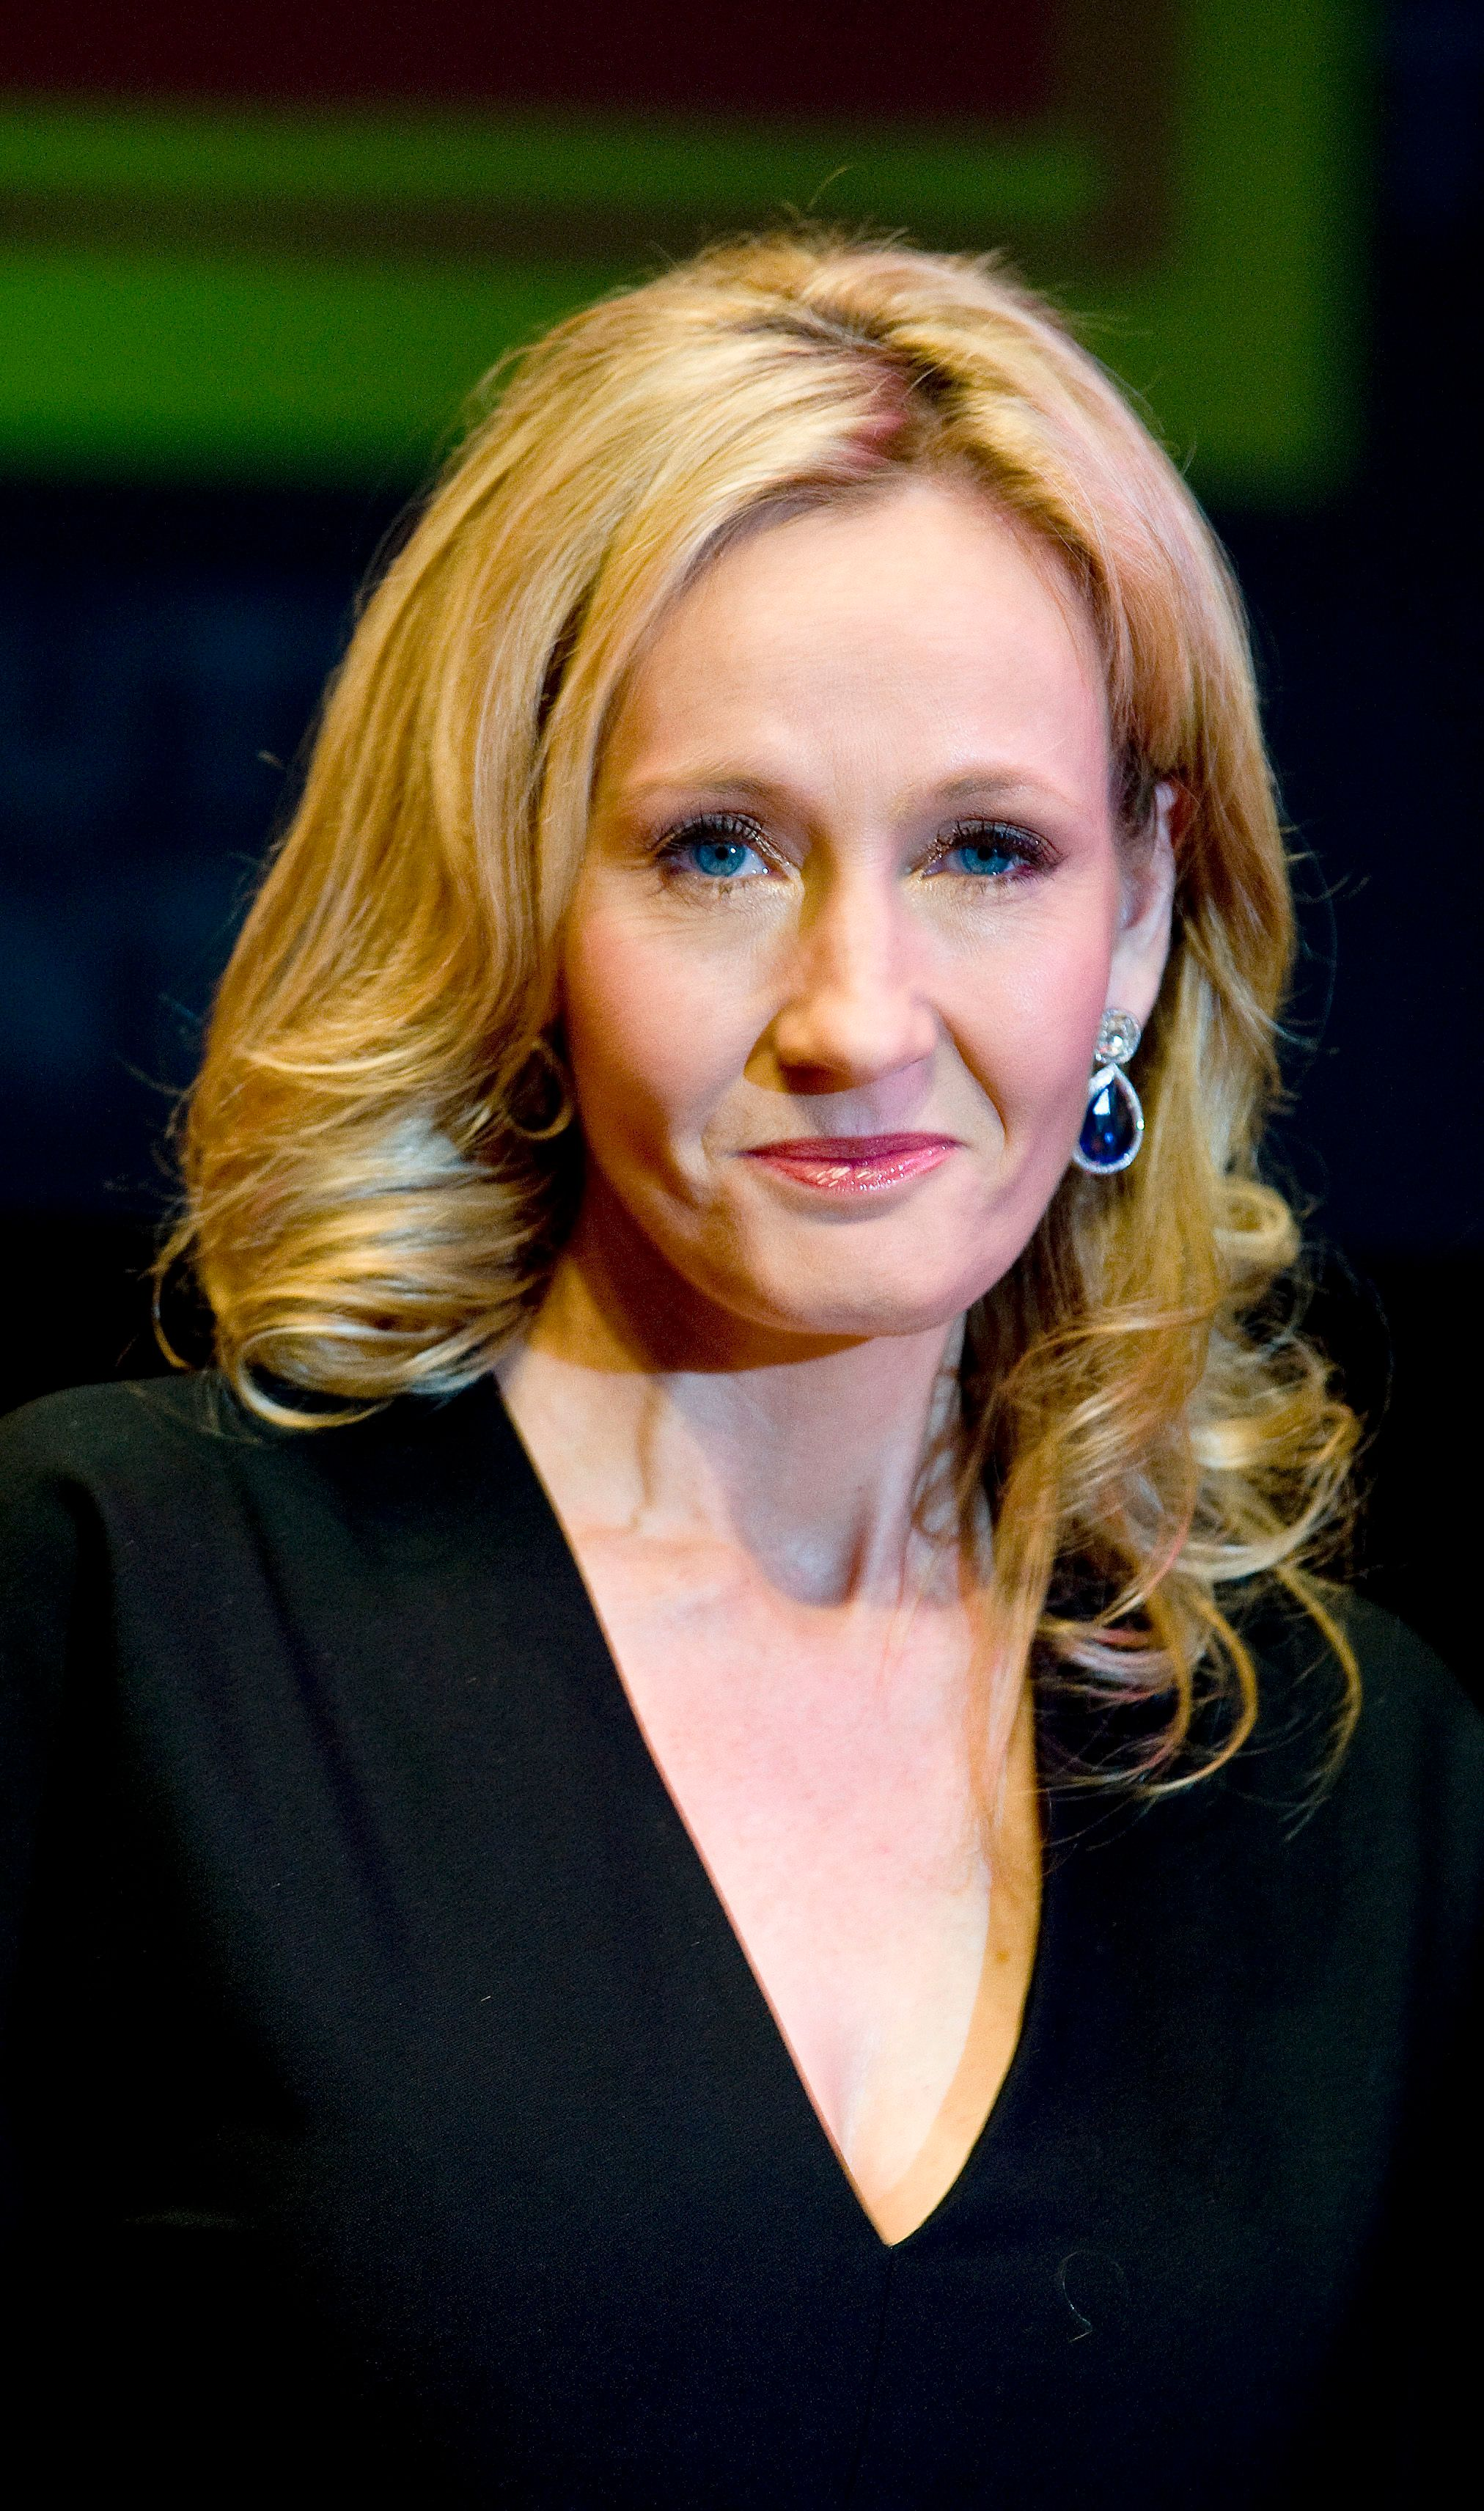 J.K Rowling Among 100 Writers And Activists Calling For UN Investigation Into Khashoggi